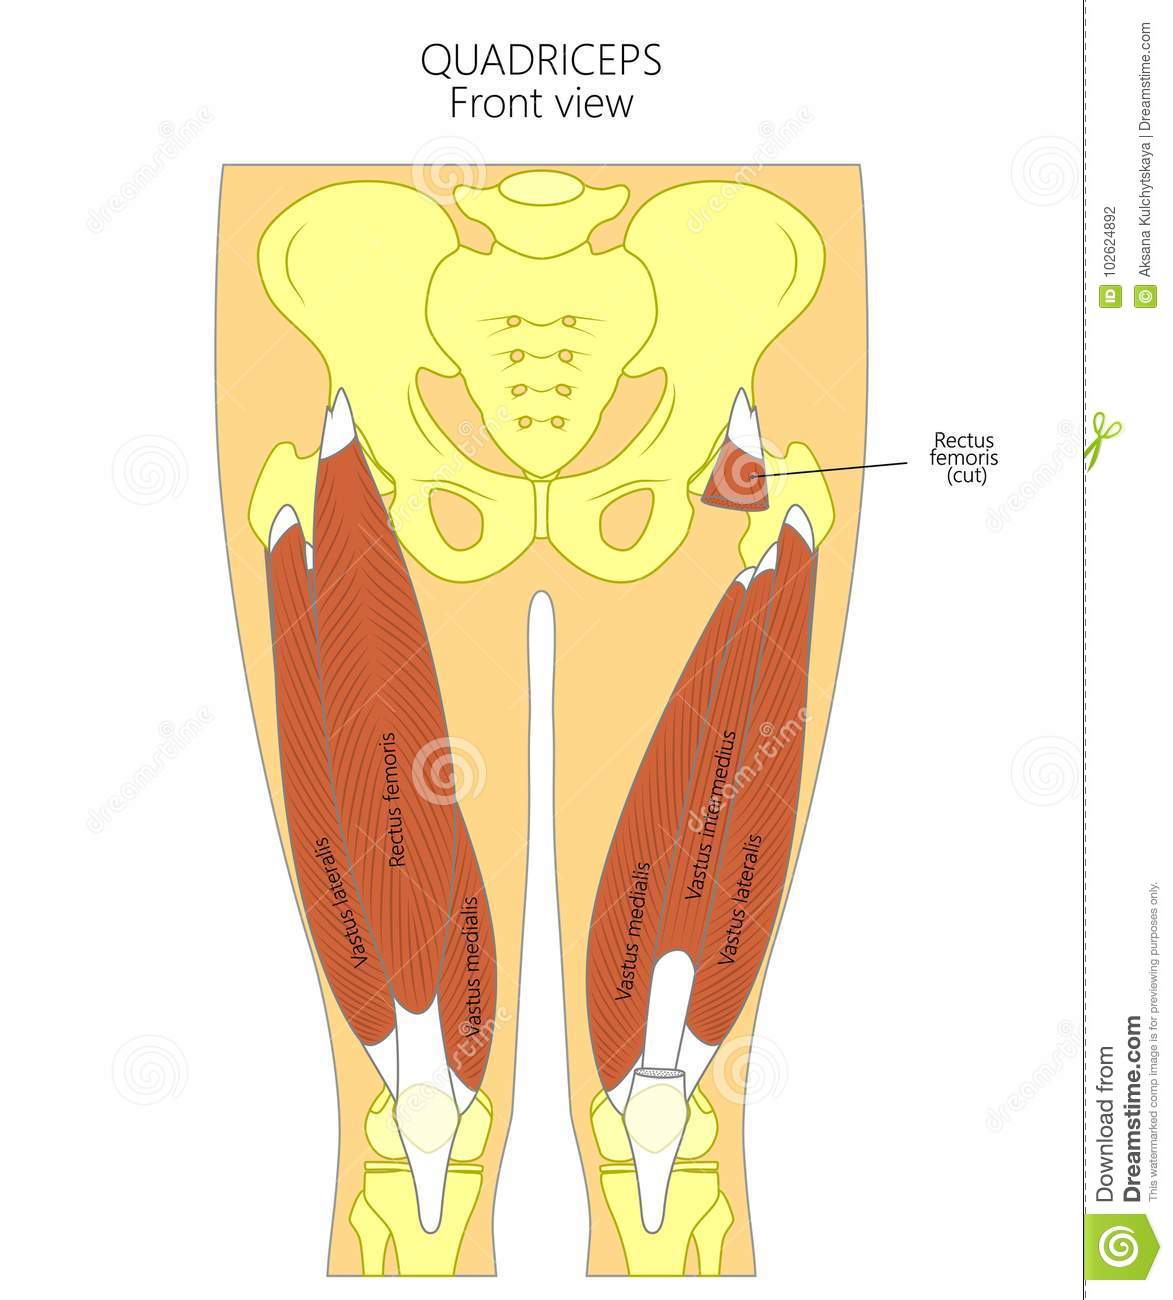 hight resolution of vector illustration diagram anatomy of human quadriceps front view for advertising and medical publications eps 10